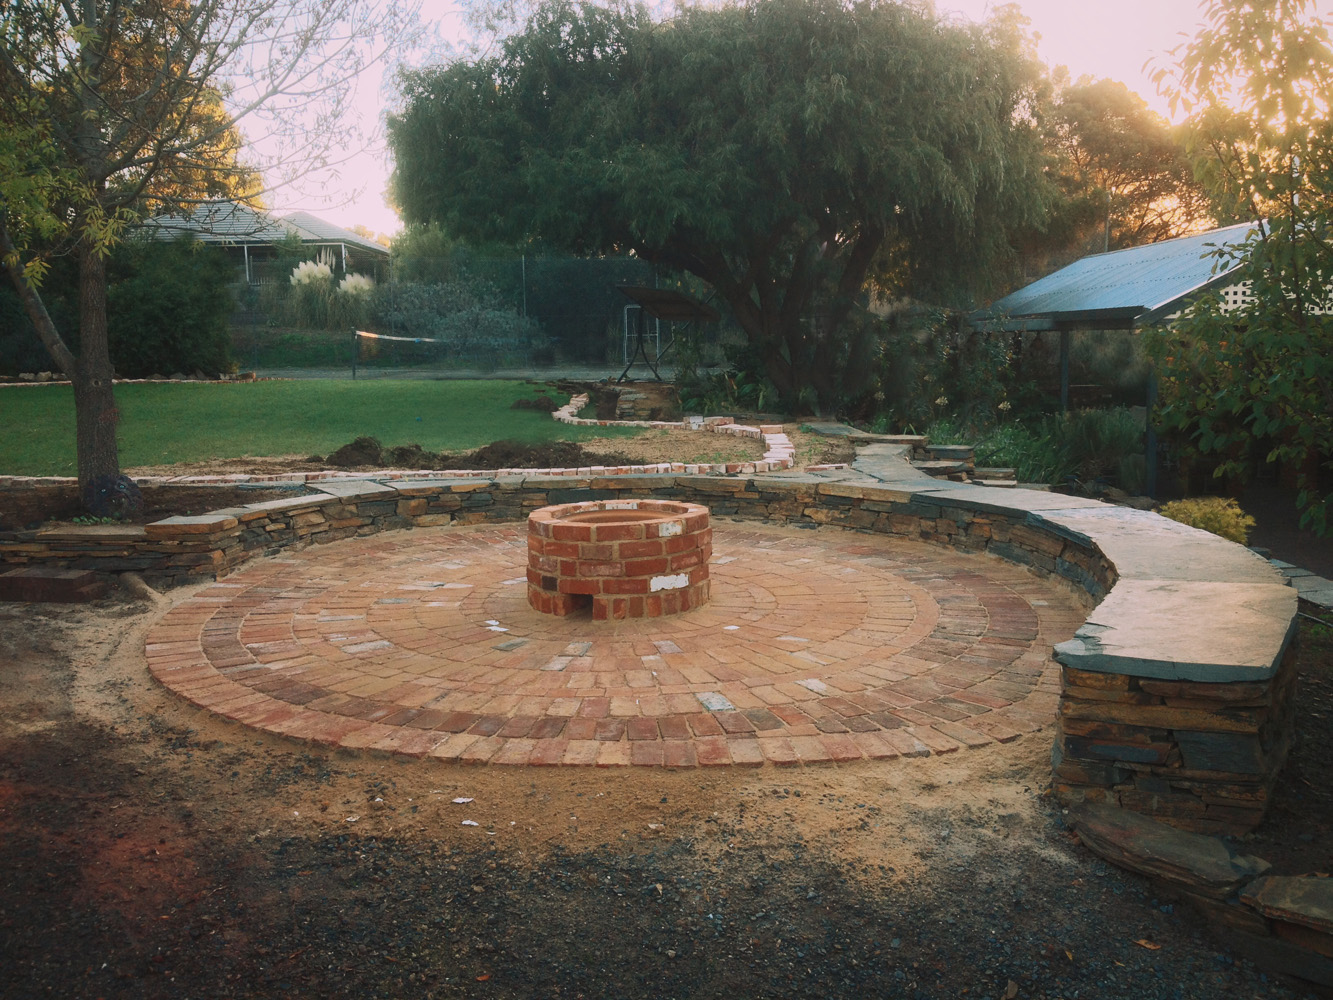 Stone seating, circular paving and a firepit